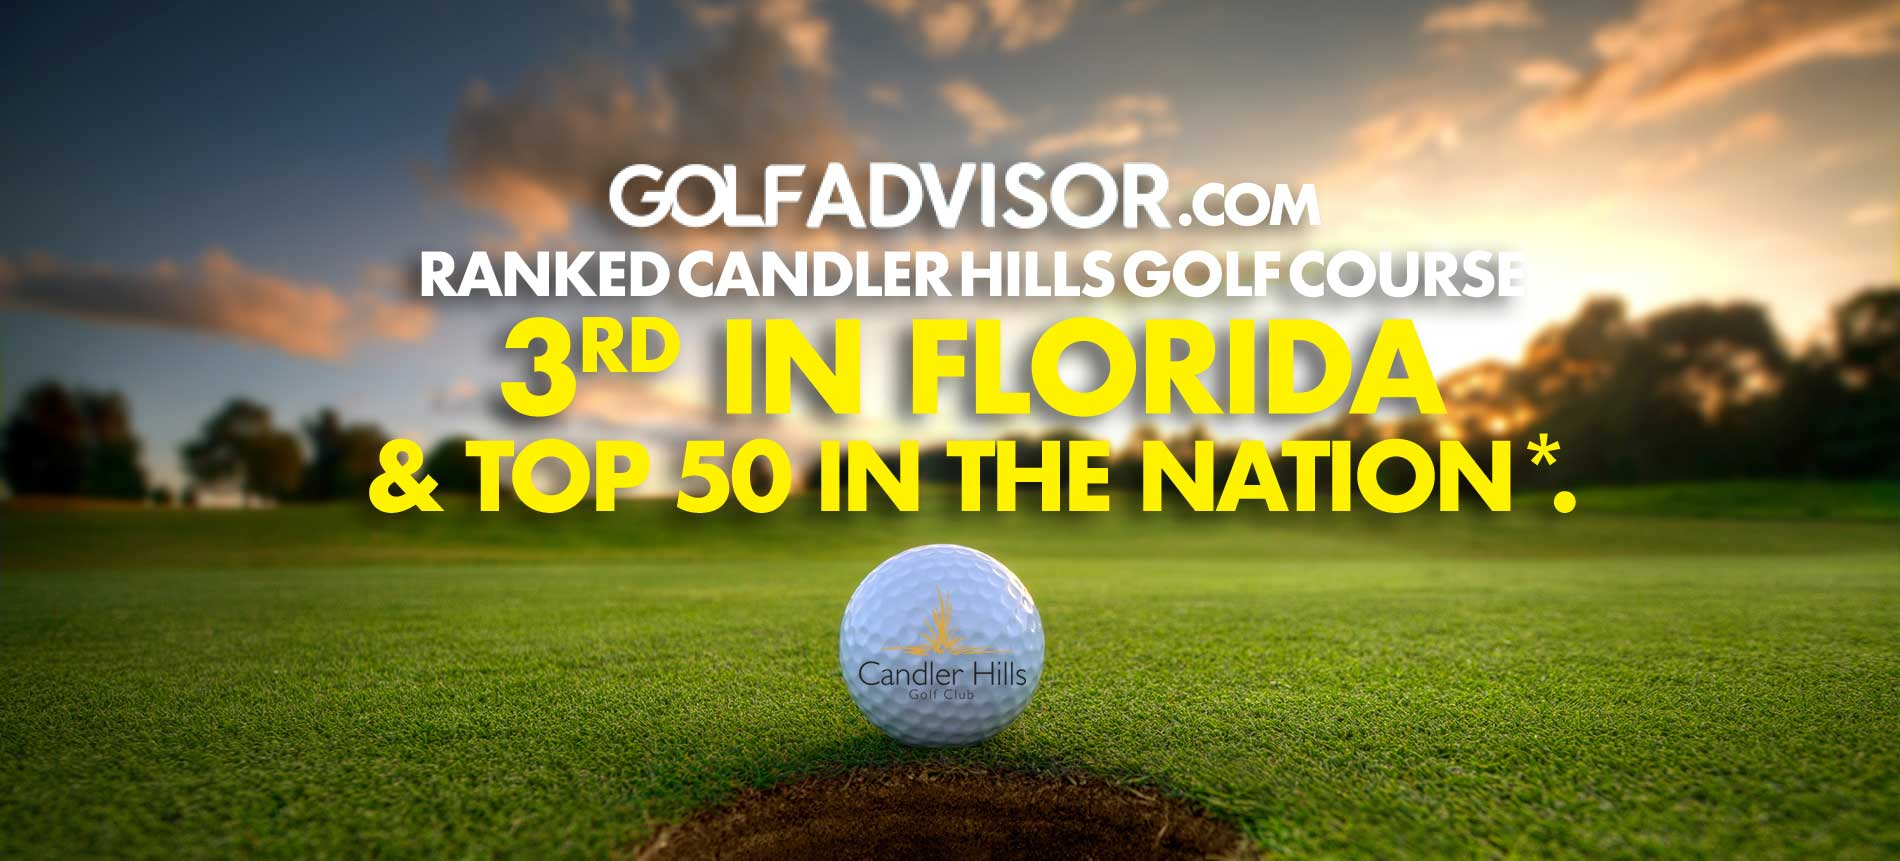 candler-hills-golf-club-golf-now-top-3-golf-courses-in-Florida